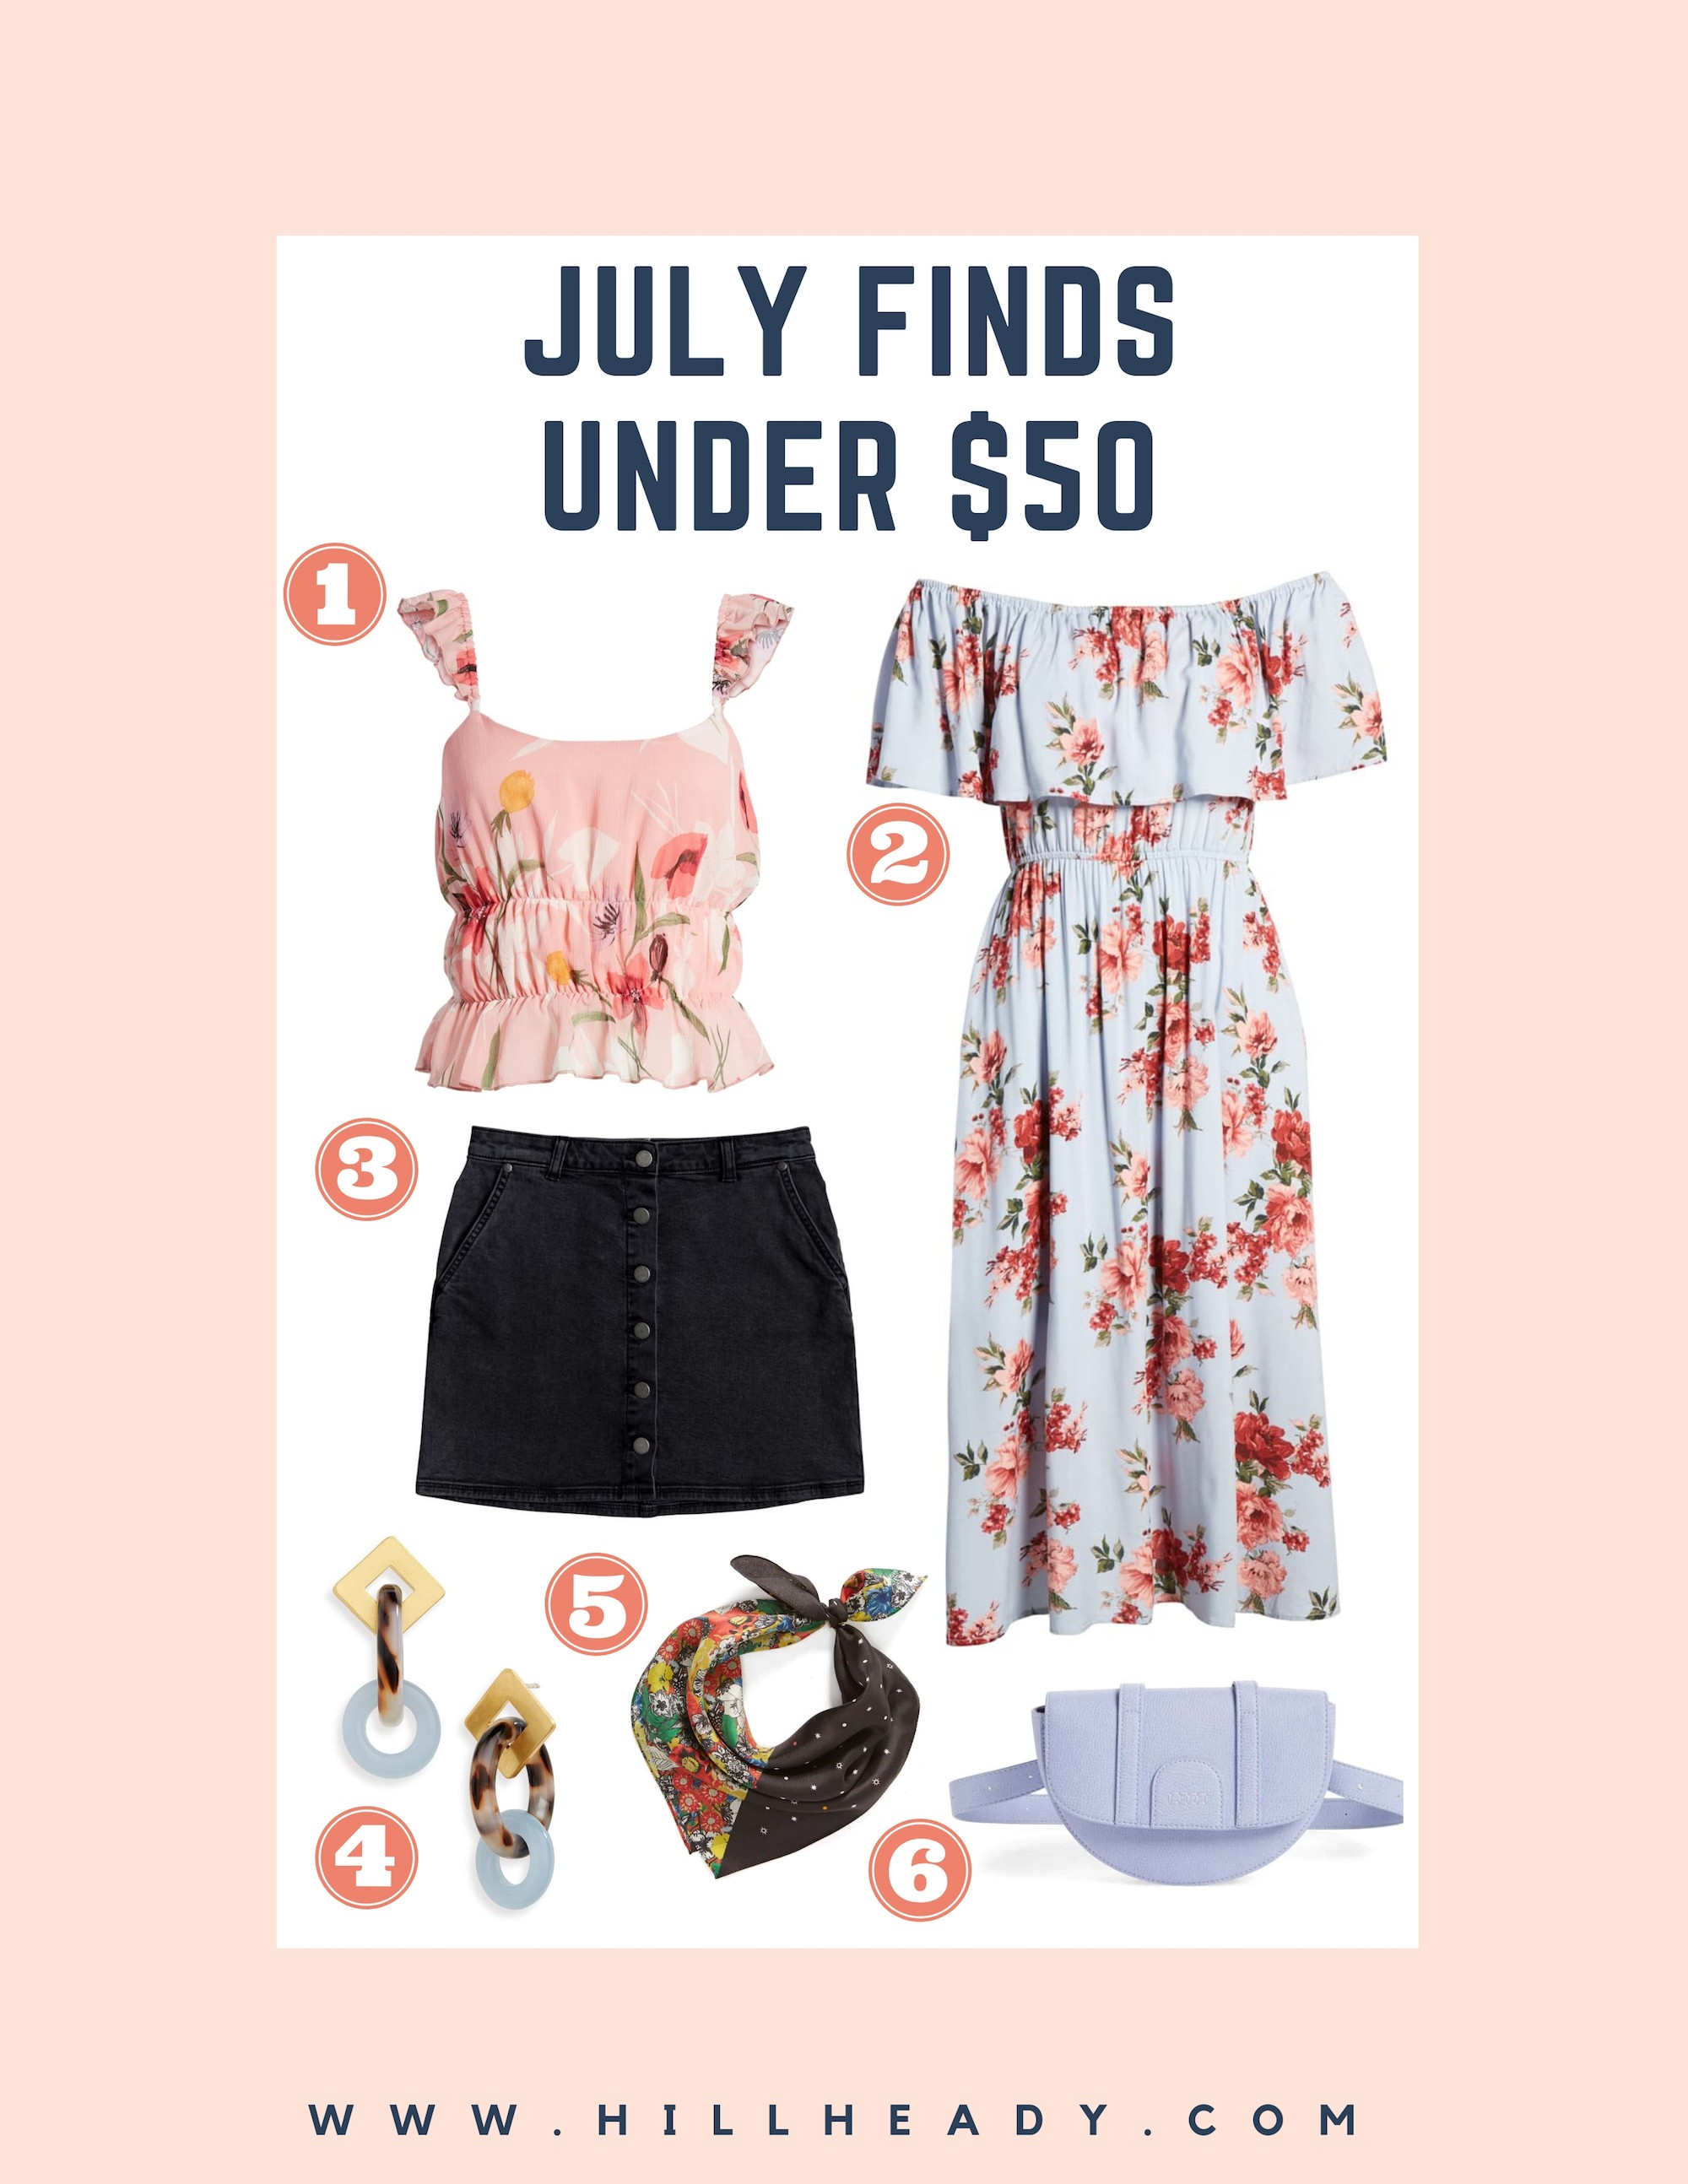 2fcf5a89a3c July Finds Under $50 + Nordstrom Giveaway - hillheady